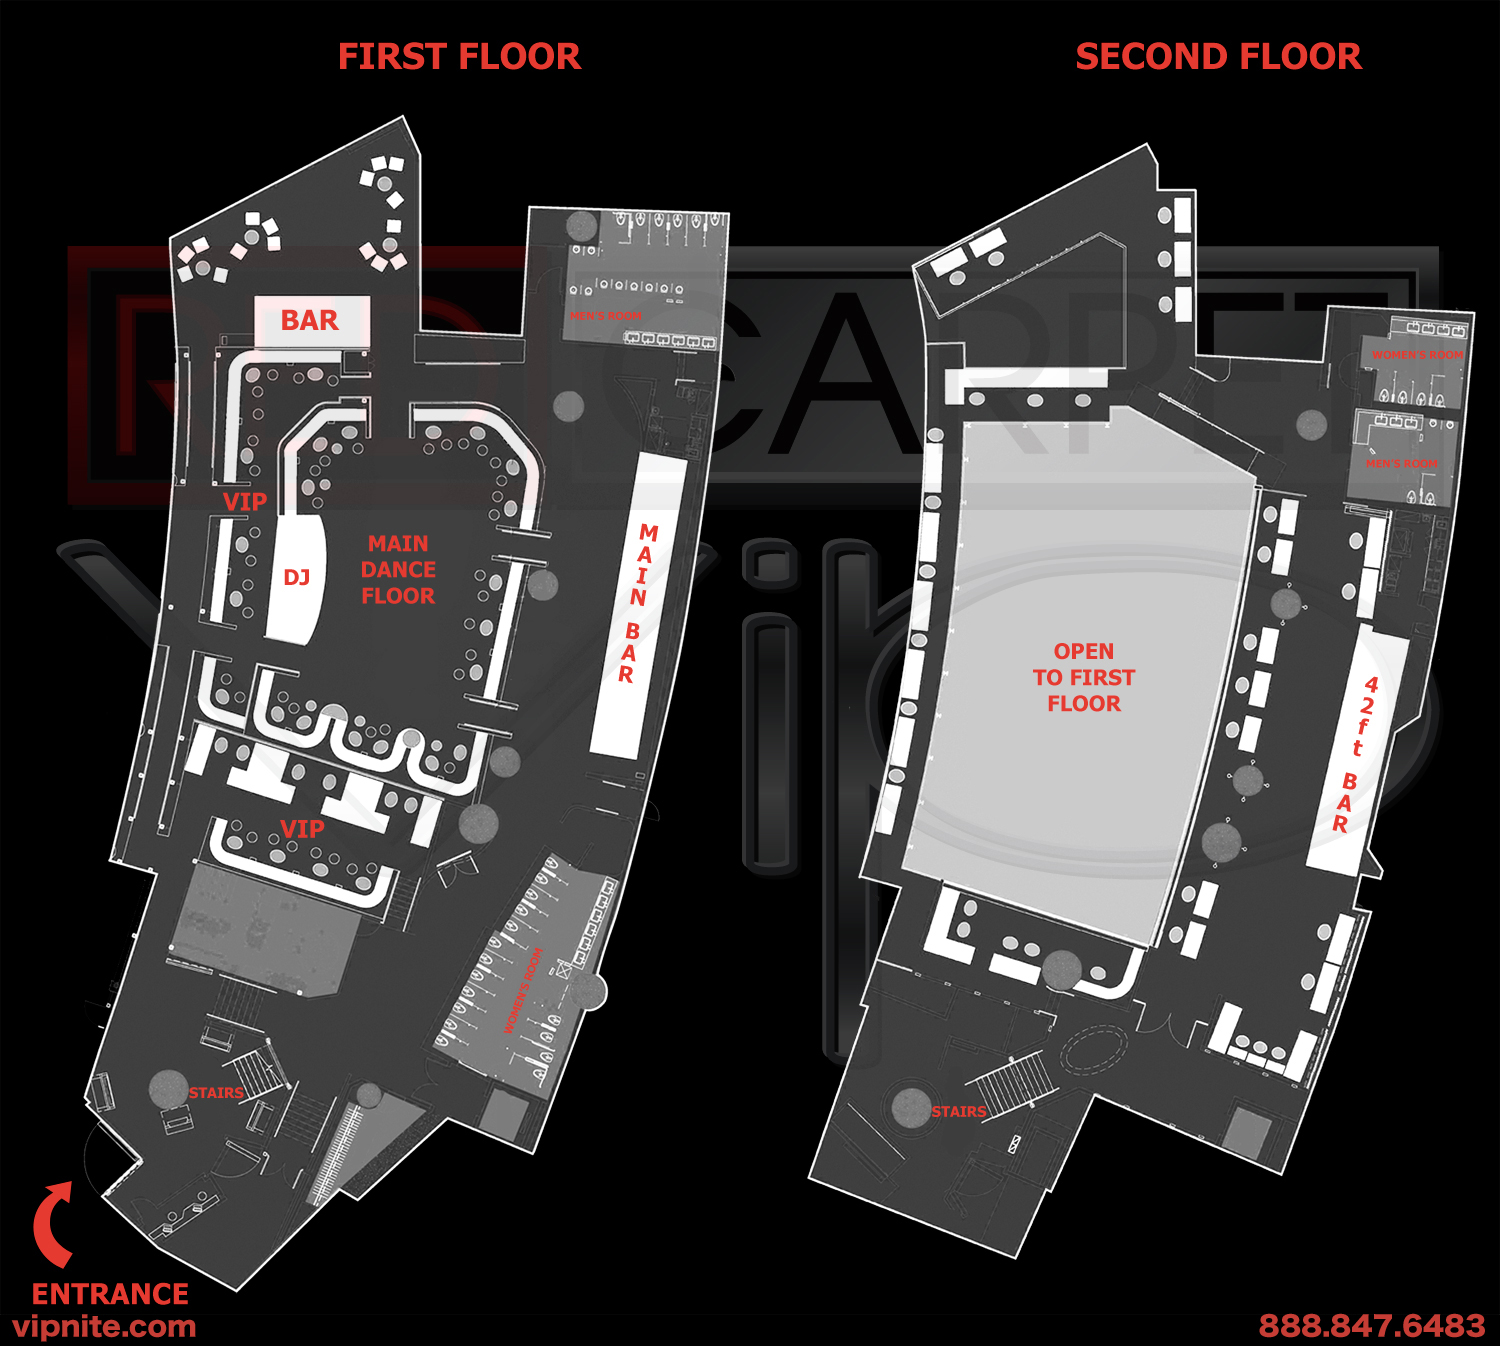 Las Vegas Nightclub Maps Red Carpet Vip